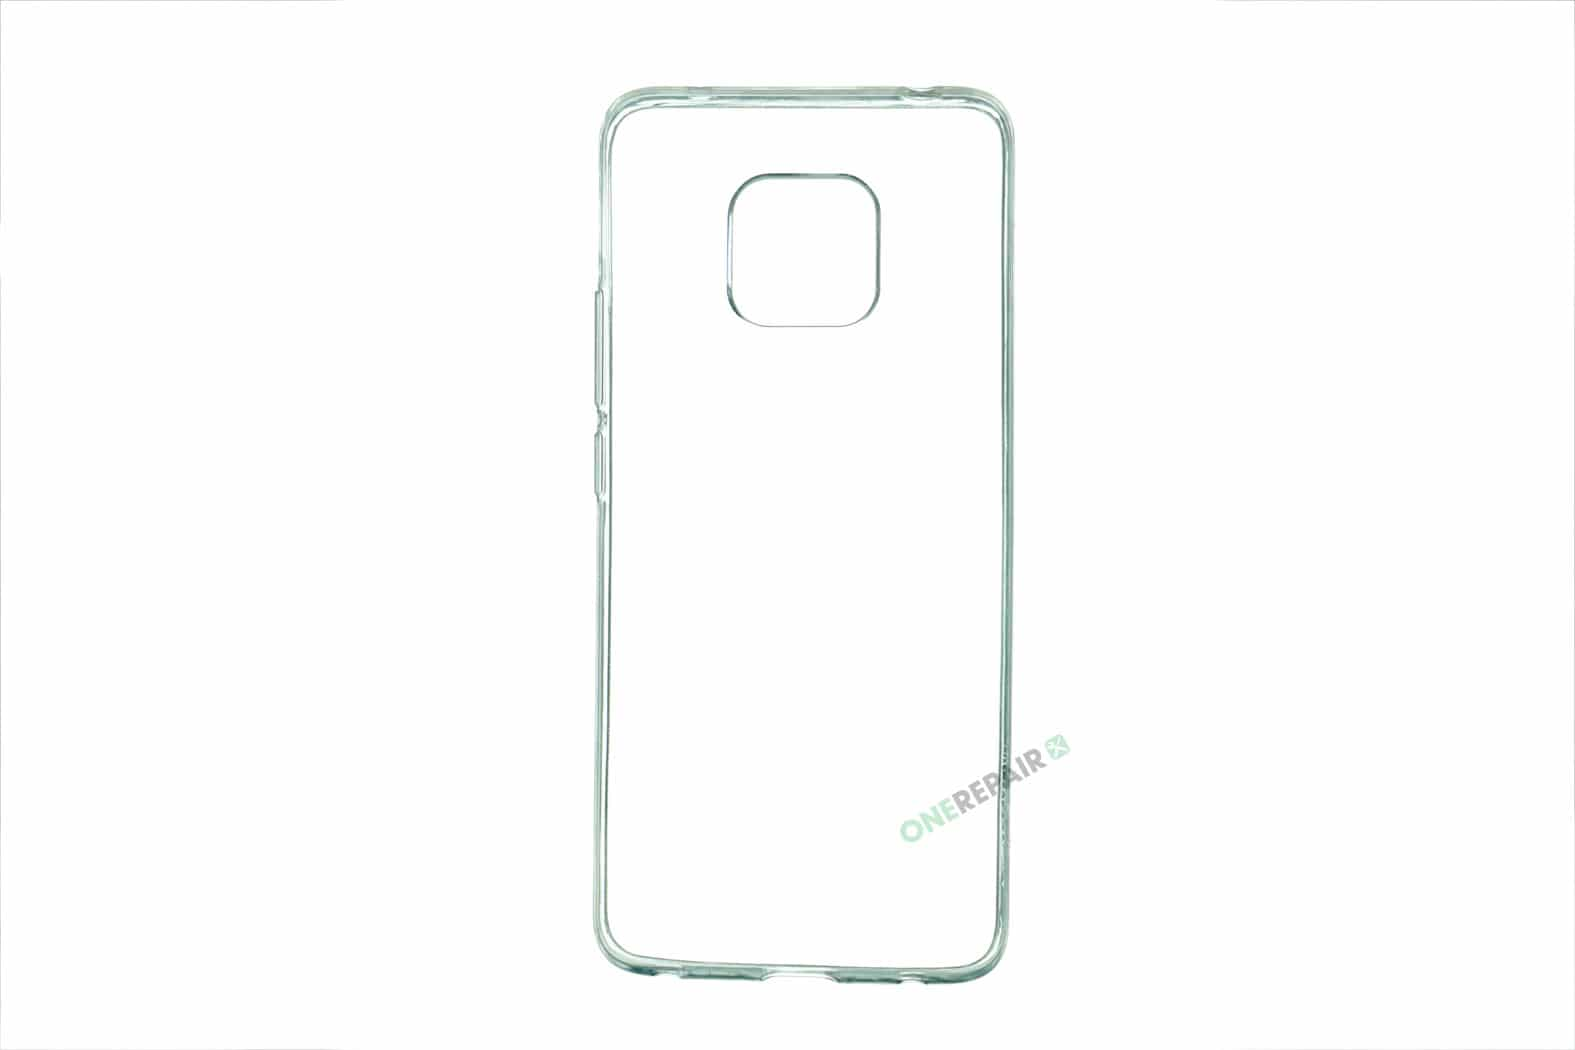 Huawei Mate 20 Pro cover, Gennemsigtig, Transparant, Gummicover